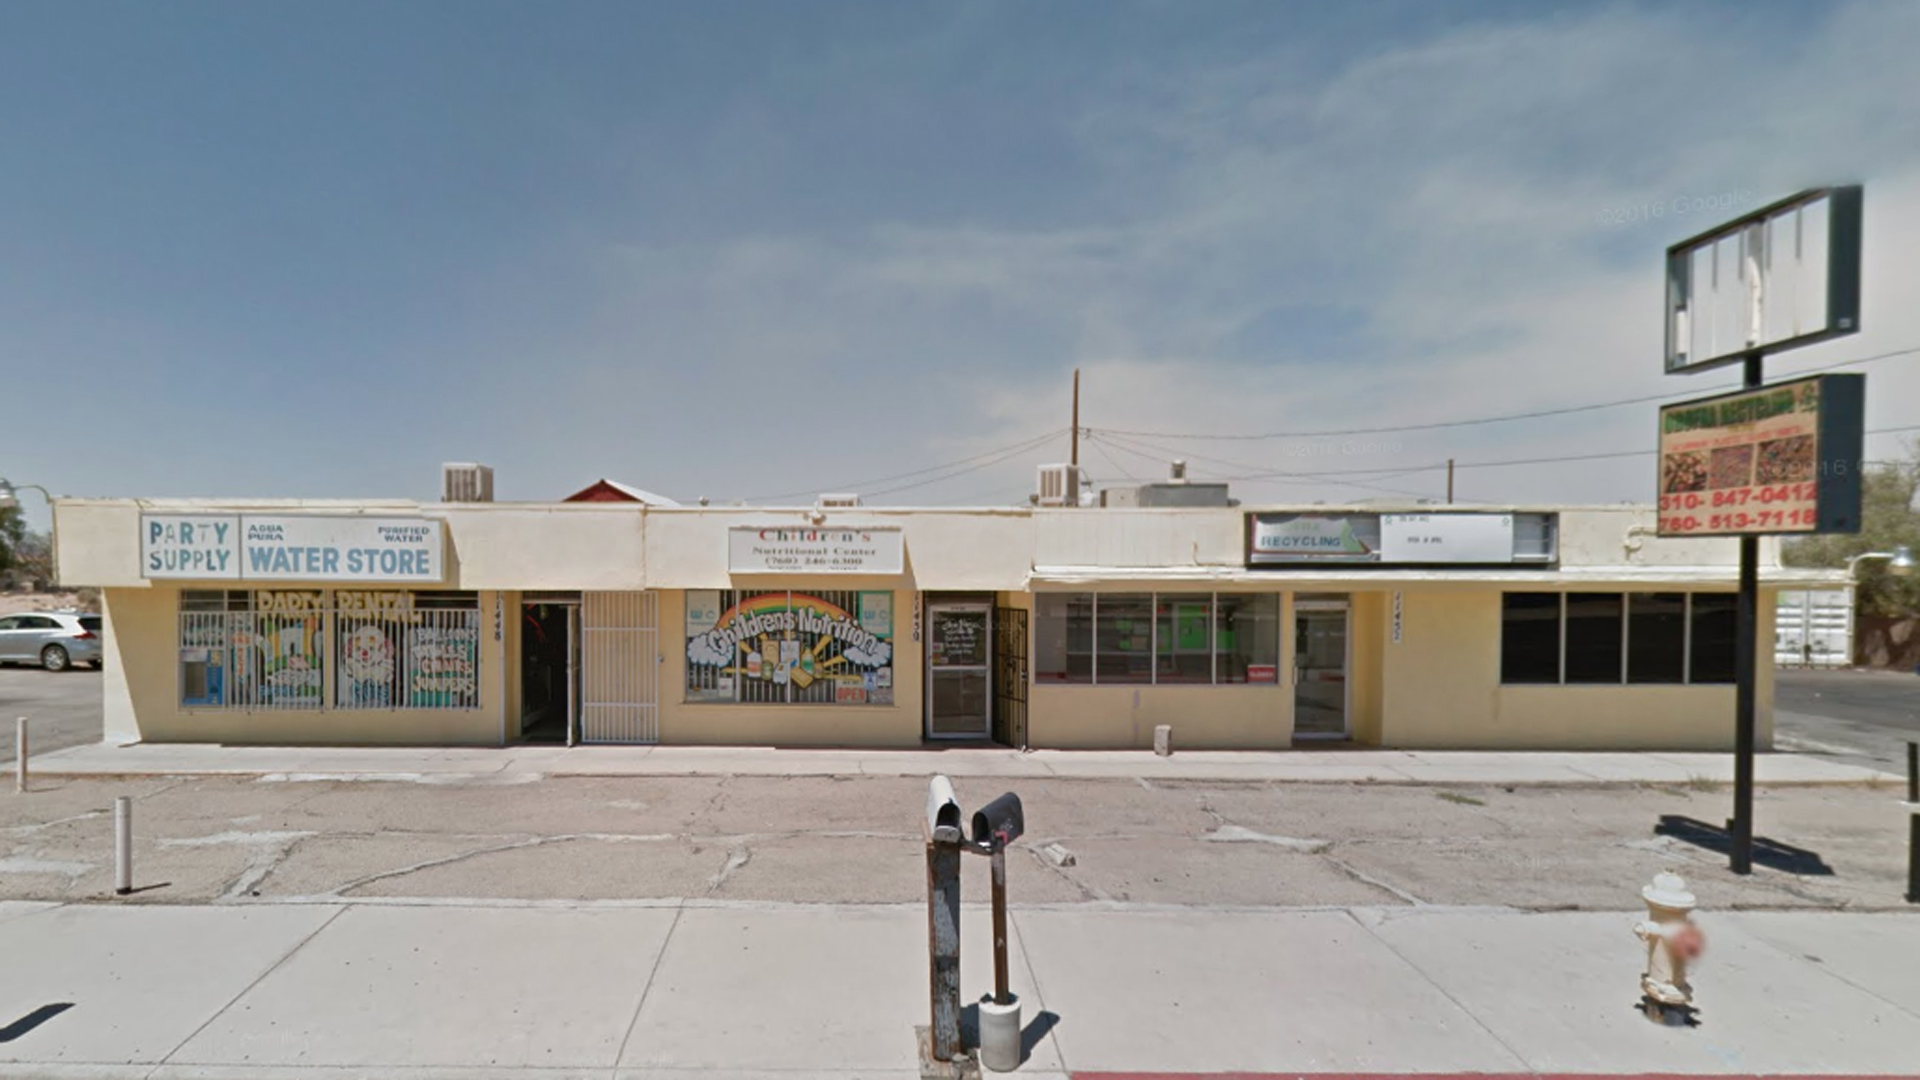 The Children's Nutrition Center on Bartlett Avenue in Adelanto is seen in a Google Maps Street View image from August 2016.